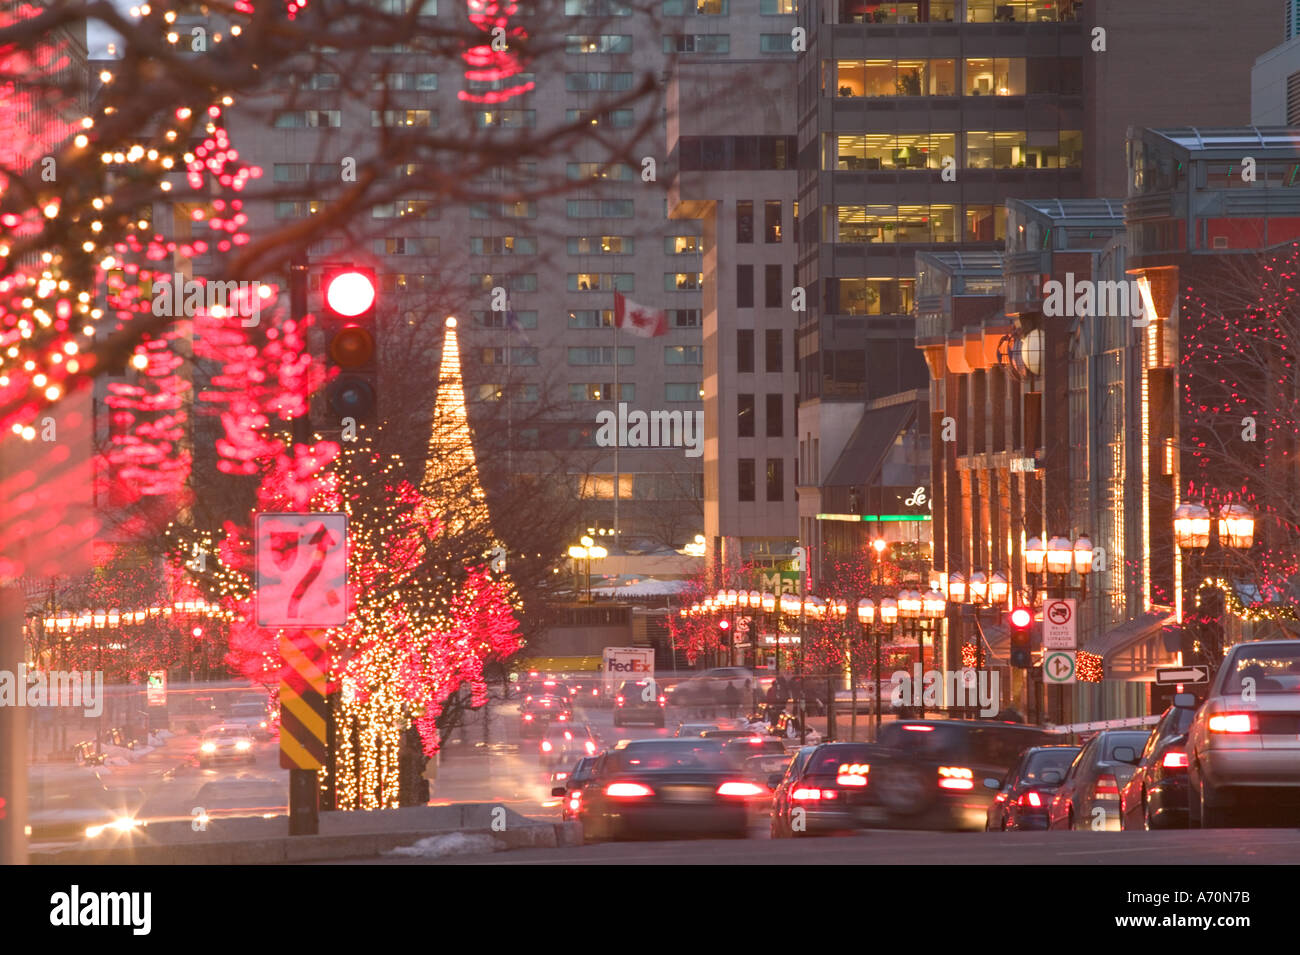 Canada quebec montreal avenue mcgill college with for Decoration quebec